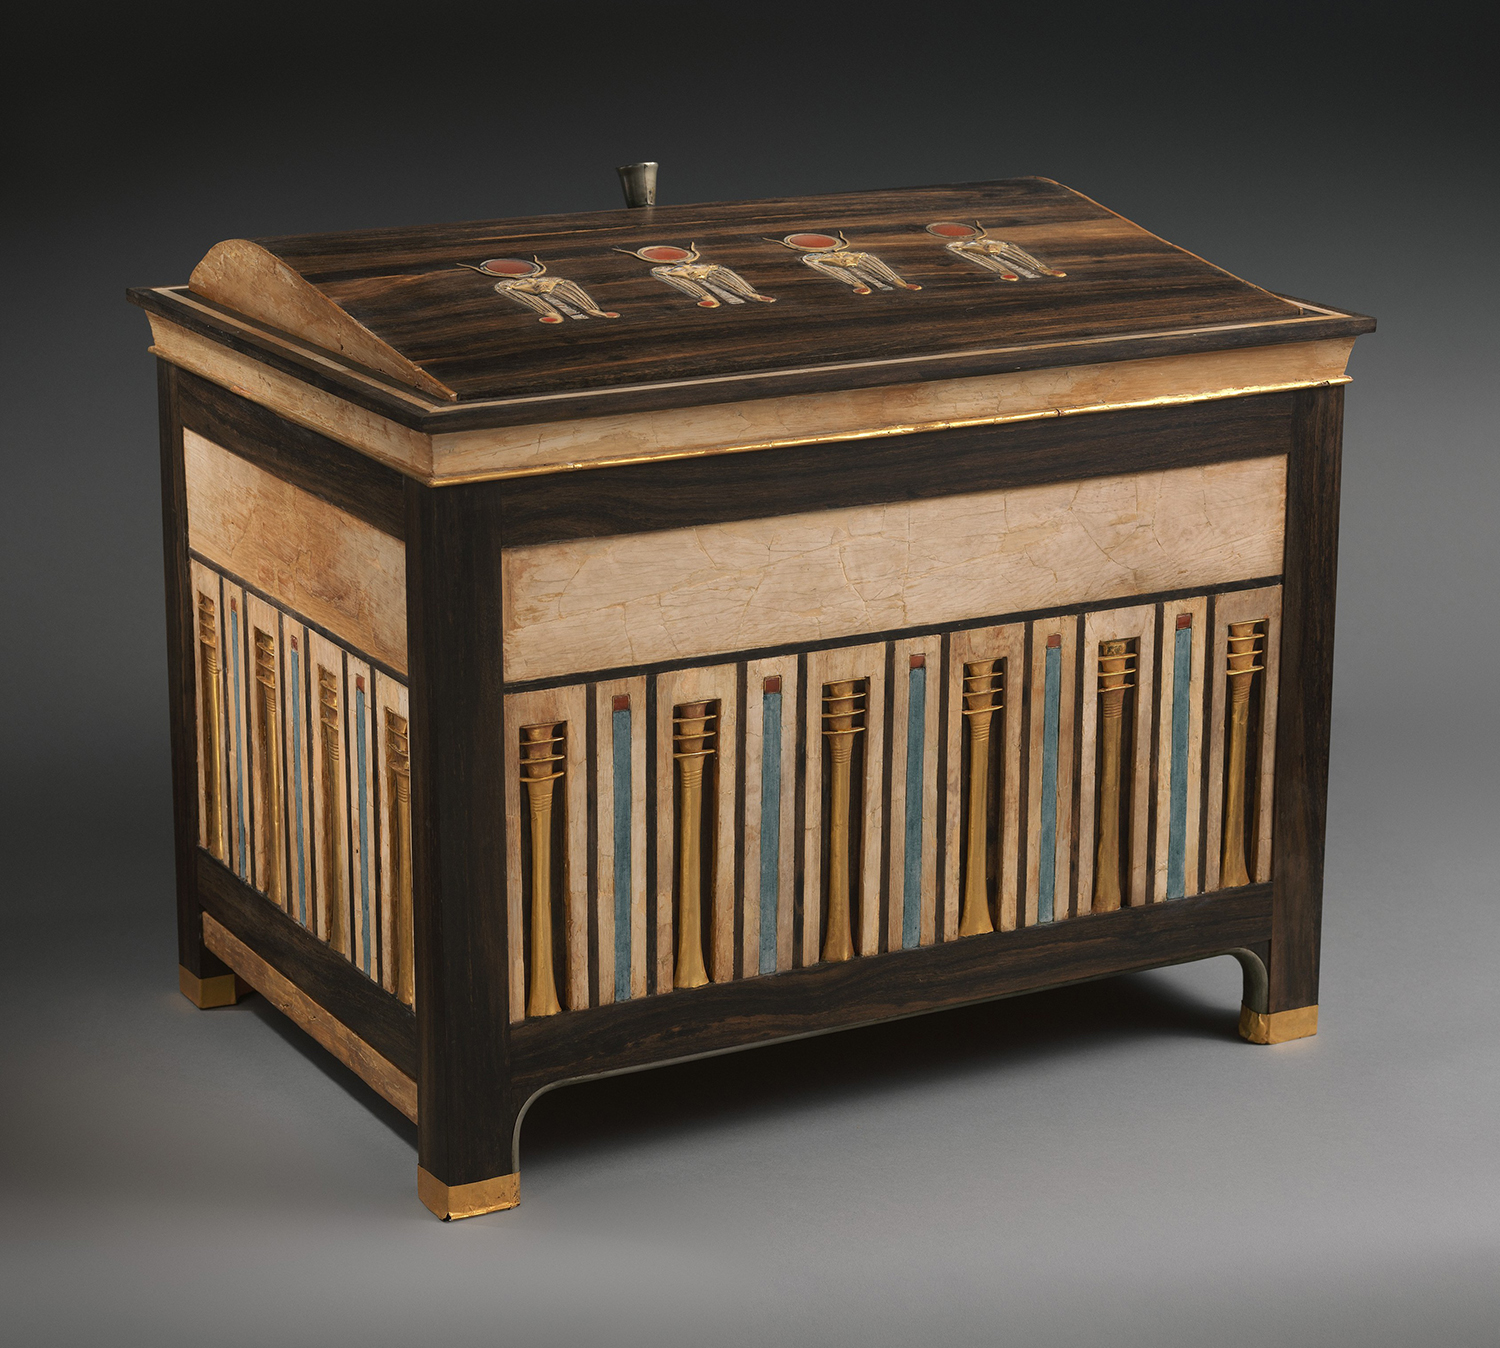 Figure 7:Jewelry Chest of Sithathoryunet, Purchase, Rogers Fund and Henry Walters Gift, 1916, Metropolitan Museum of Art, 16.1.1. Image courtesy of The Metropolitan Museum of Art, NYC. This wooden jewelry chest combines Hathoric imagery on its lid and elongated  djed  pillars along the sides. These decorations, while aesthetically pleasing, also had deeper religious meaning.